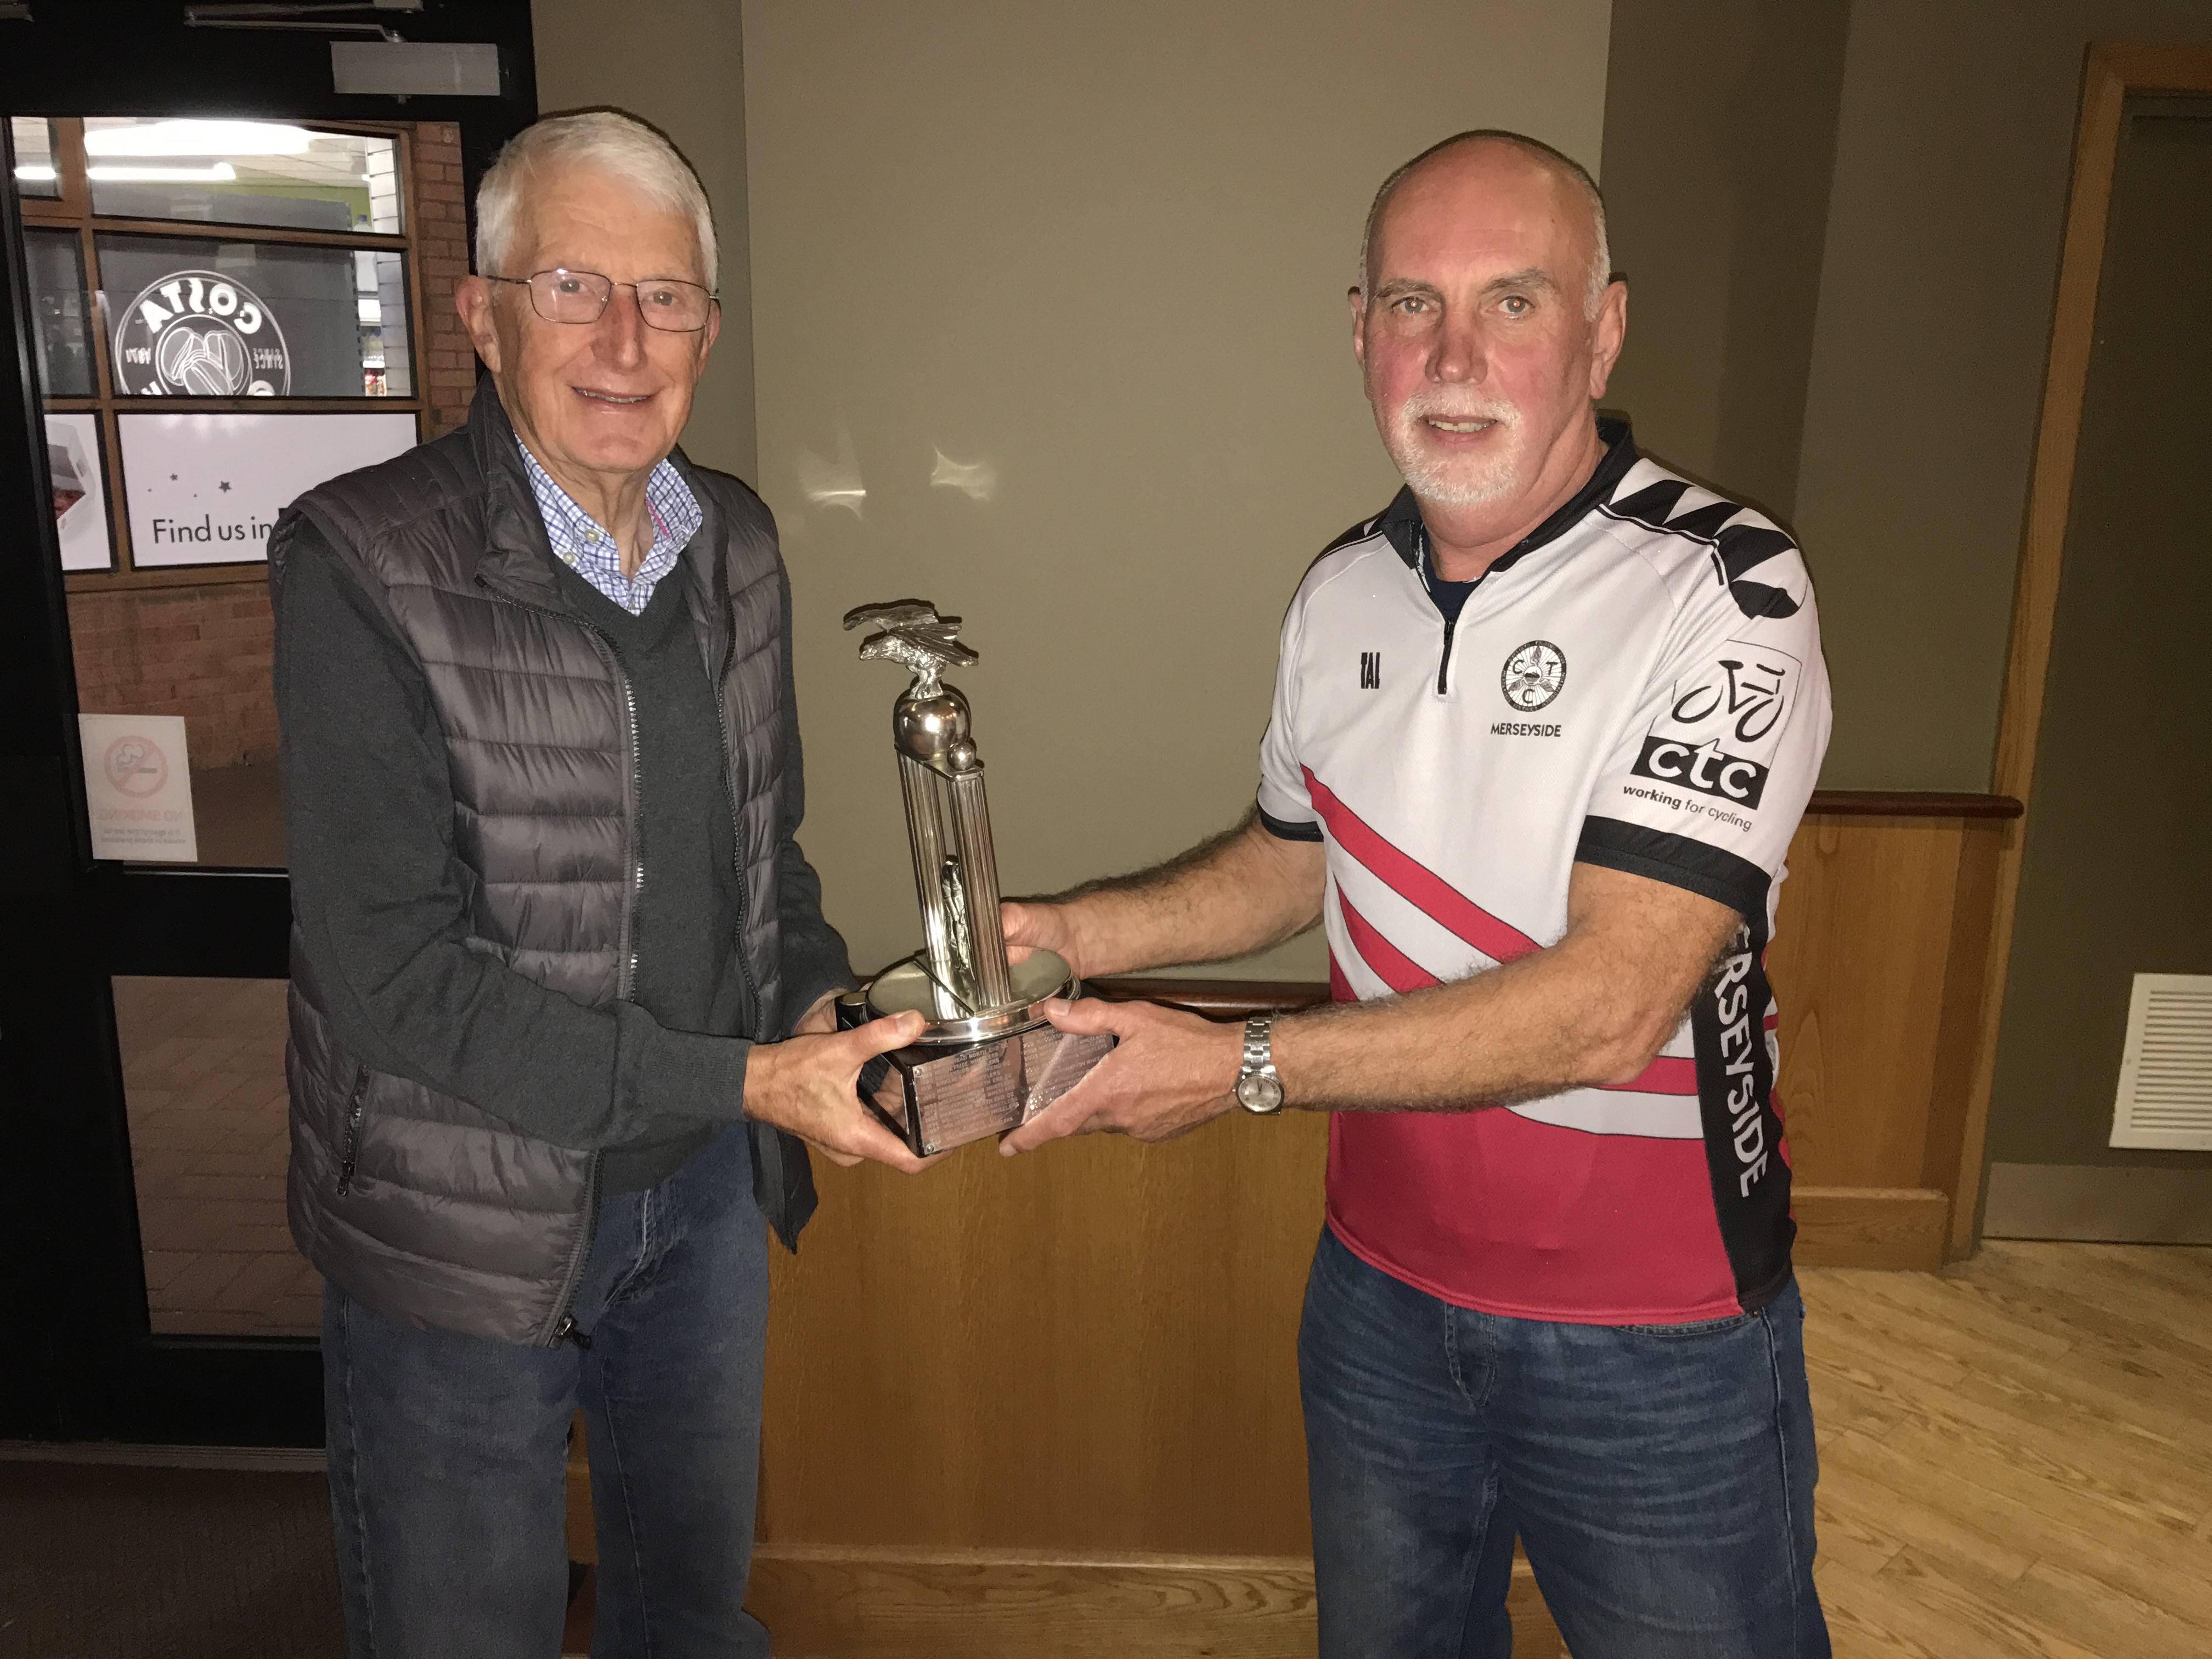 Wild Wales Challenge – Trophy Award